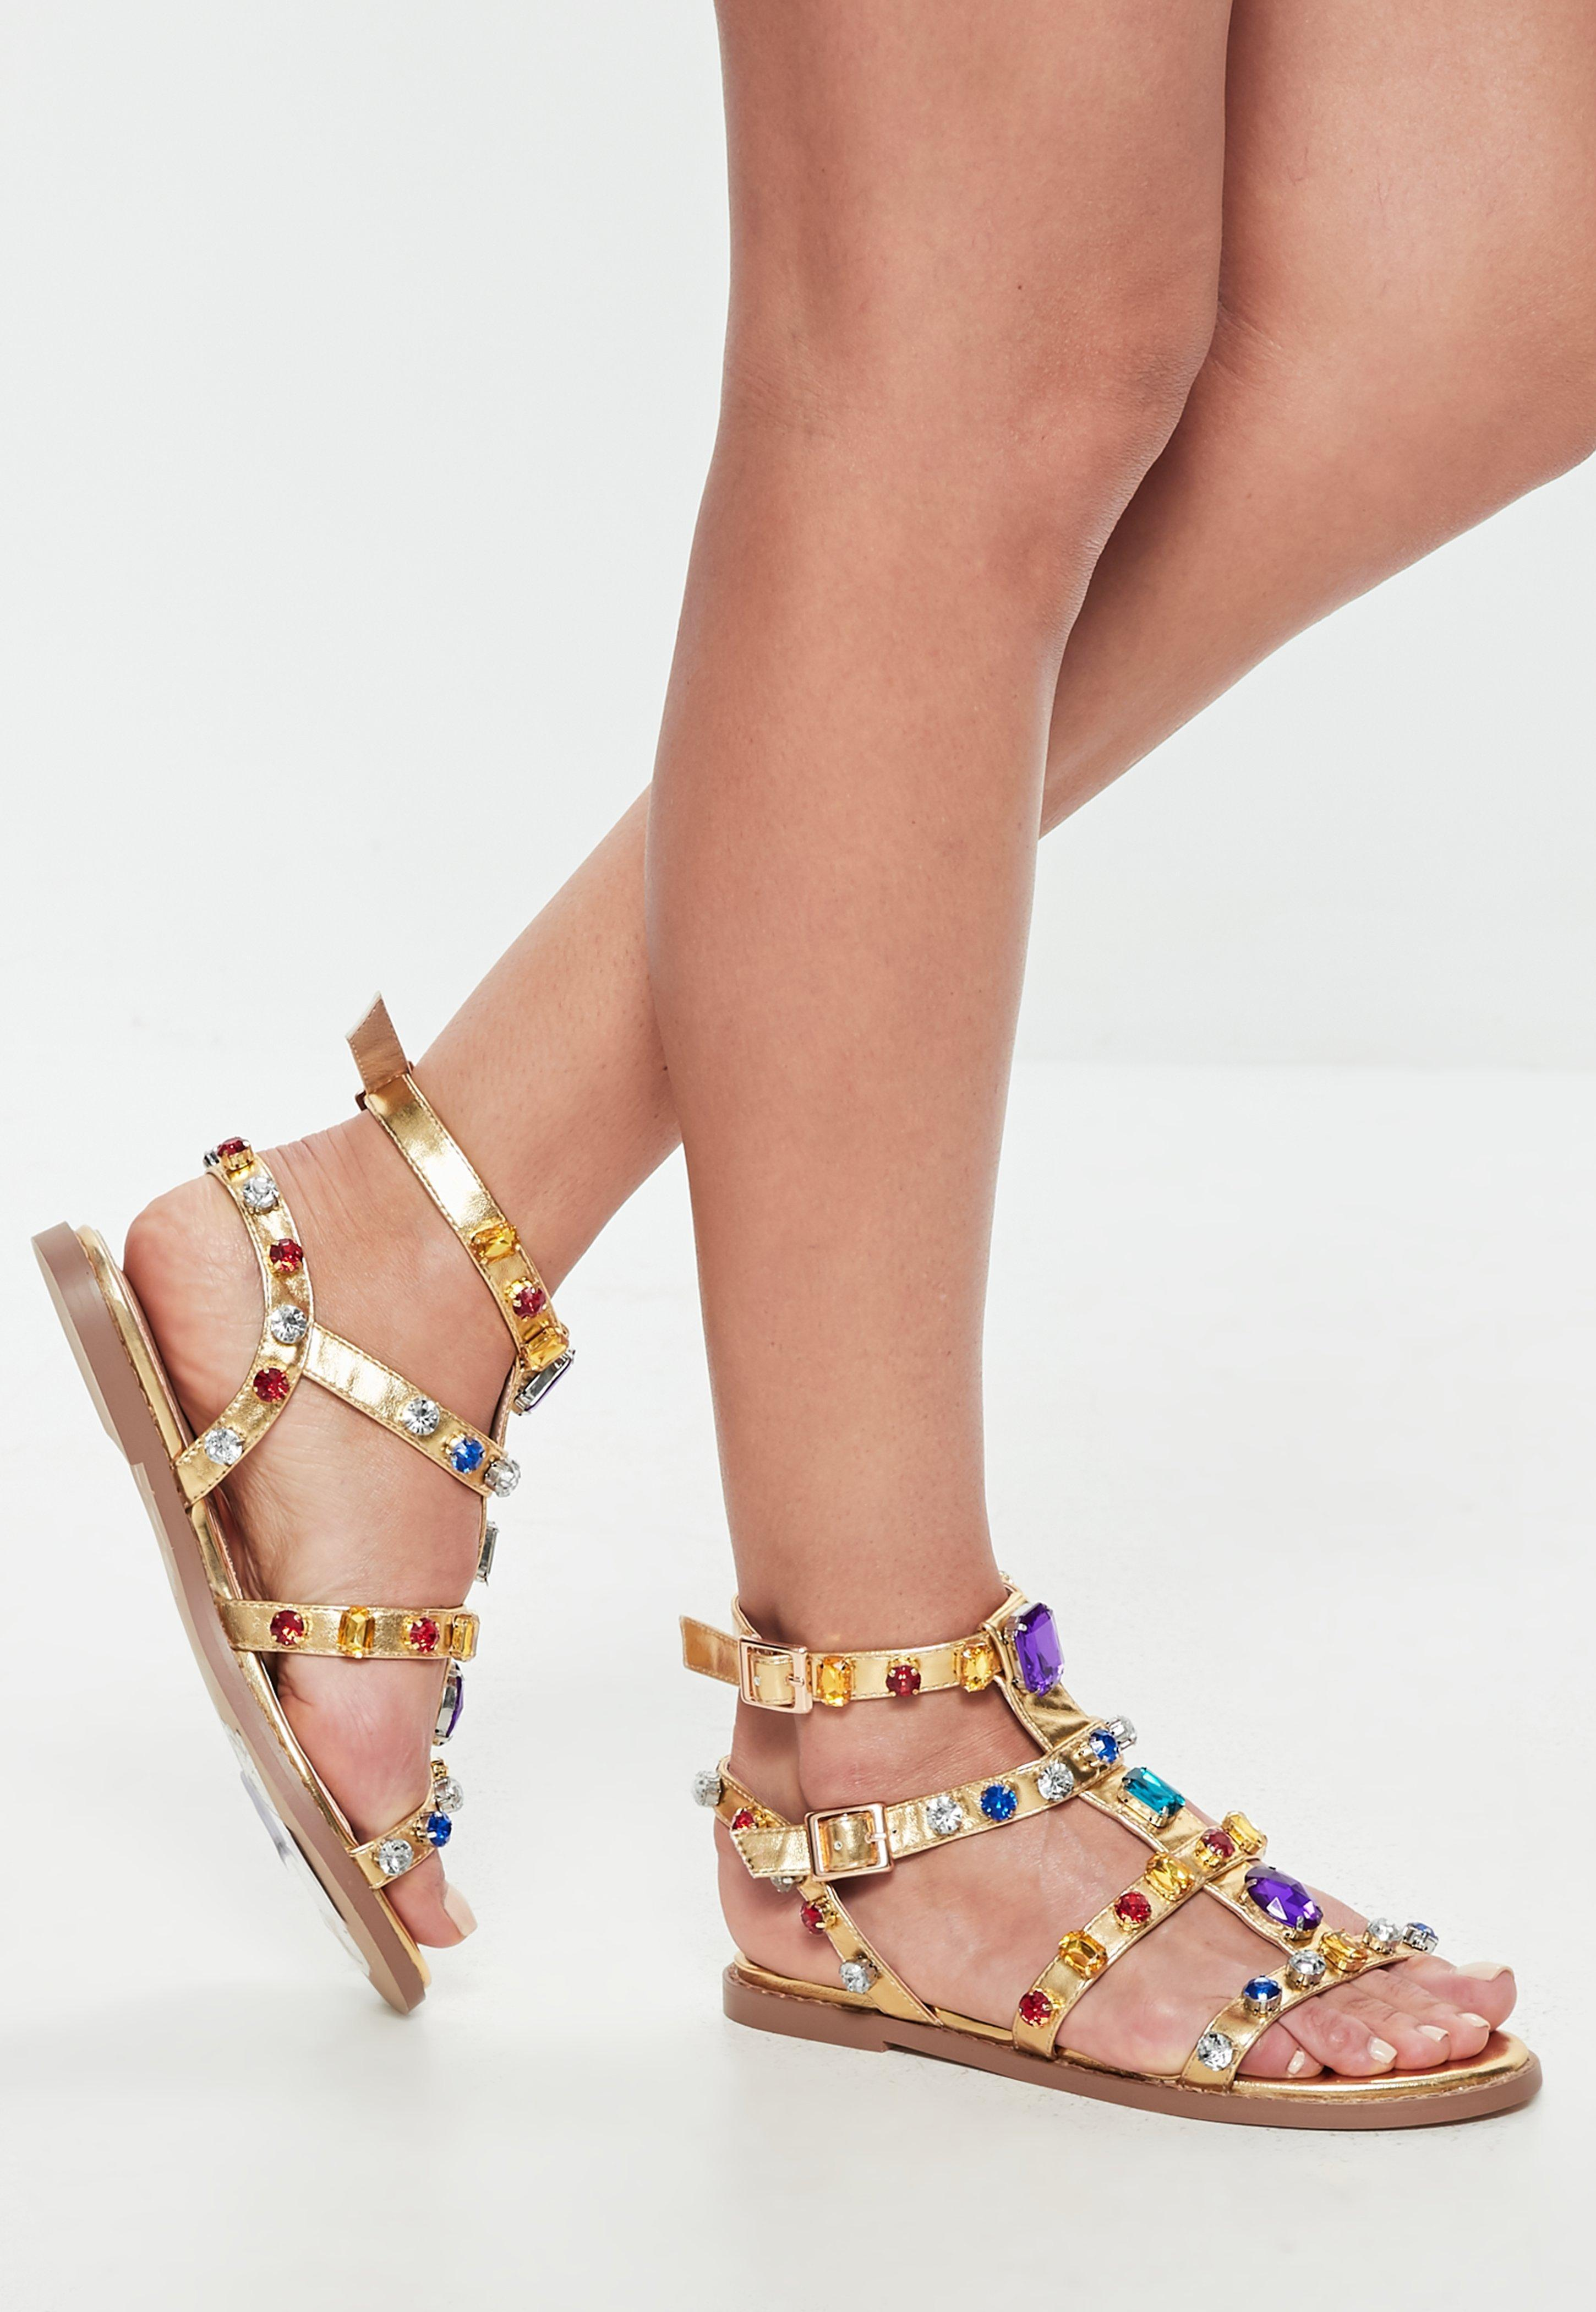 850b4f90fbc Gallery. Previously sold at  Missguided · Women s Gladiator Sandals Women s  Gold ...